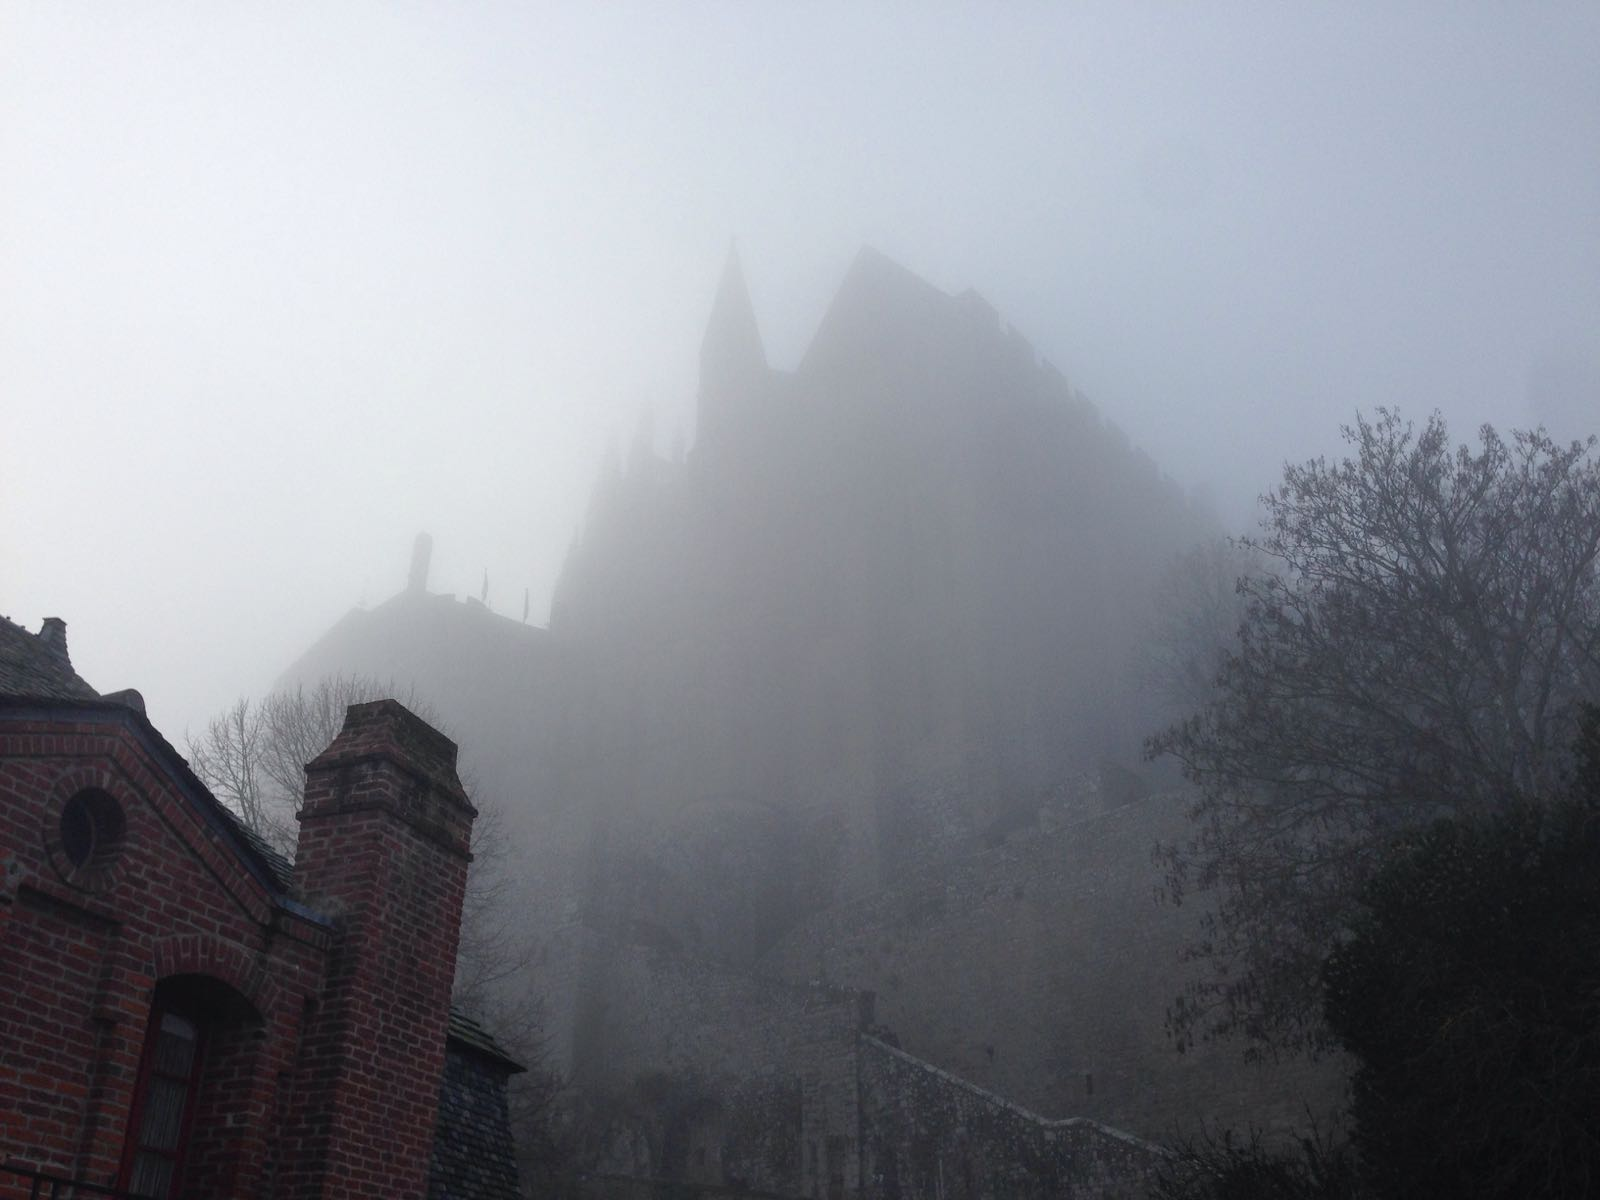 Mont-Saint-Michel in the fog